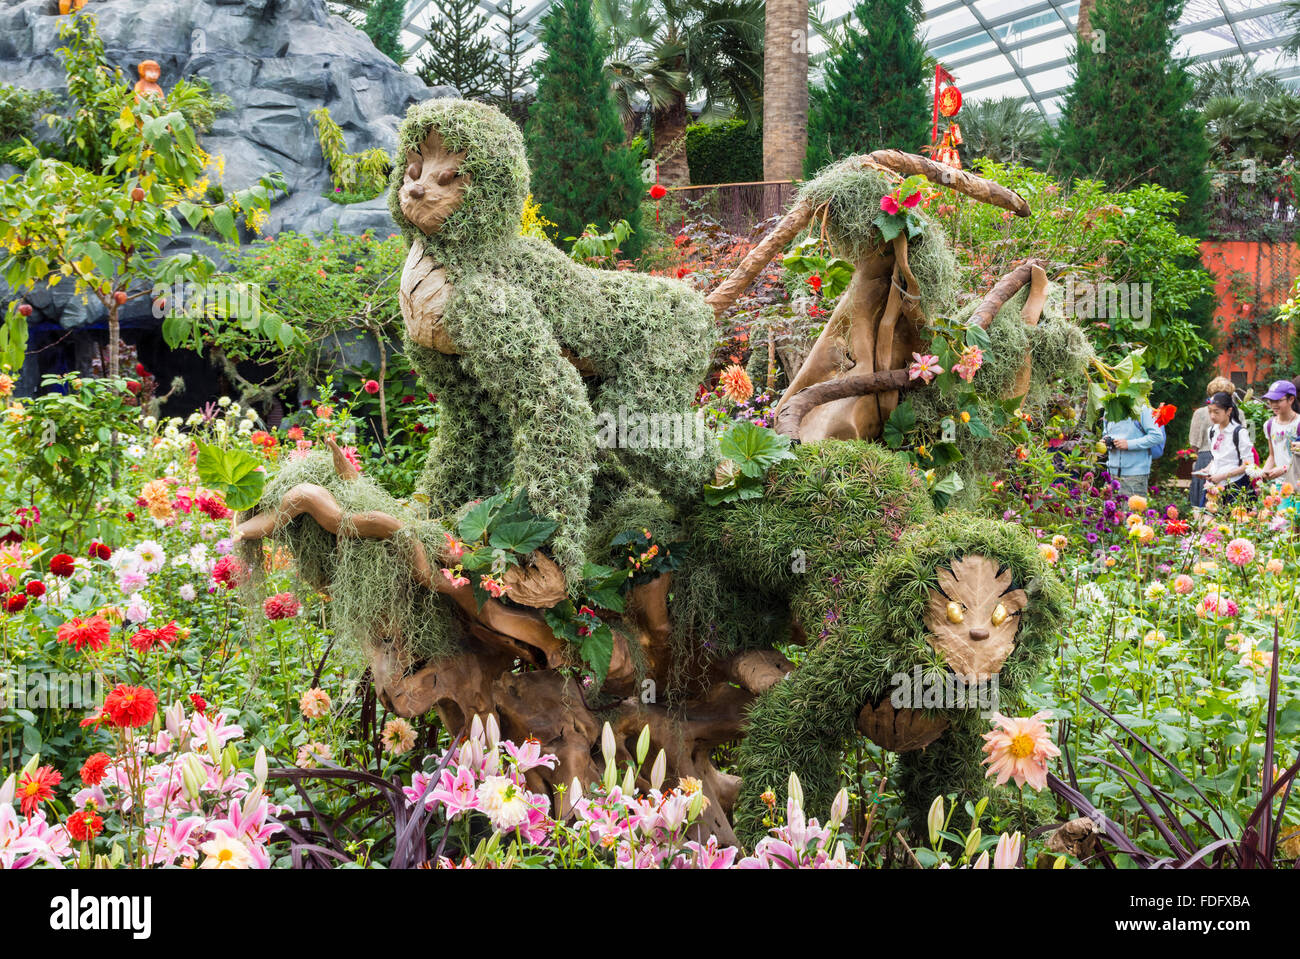 Monkey Shaped Topiary Art Celebrating The Chinese New Year Of The